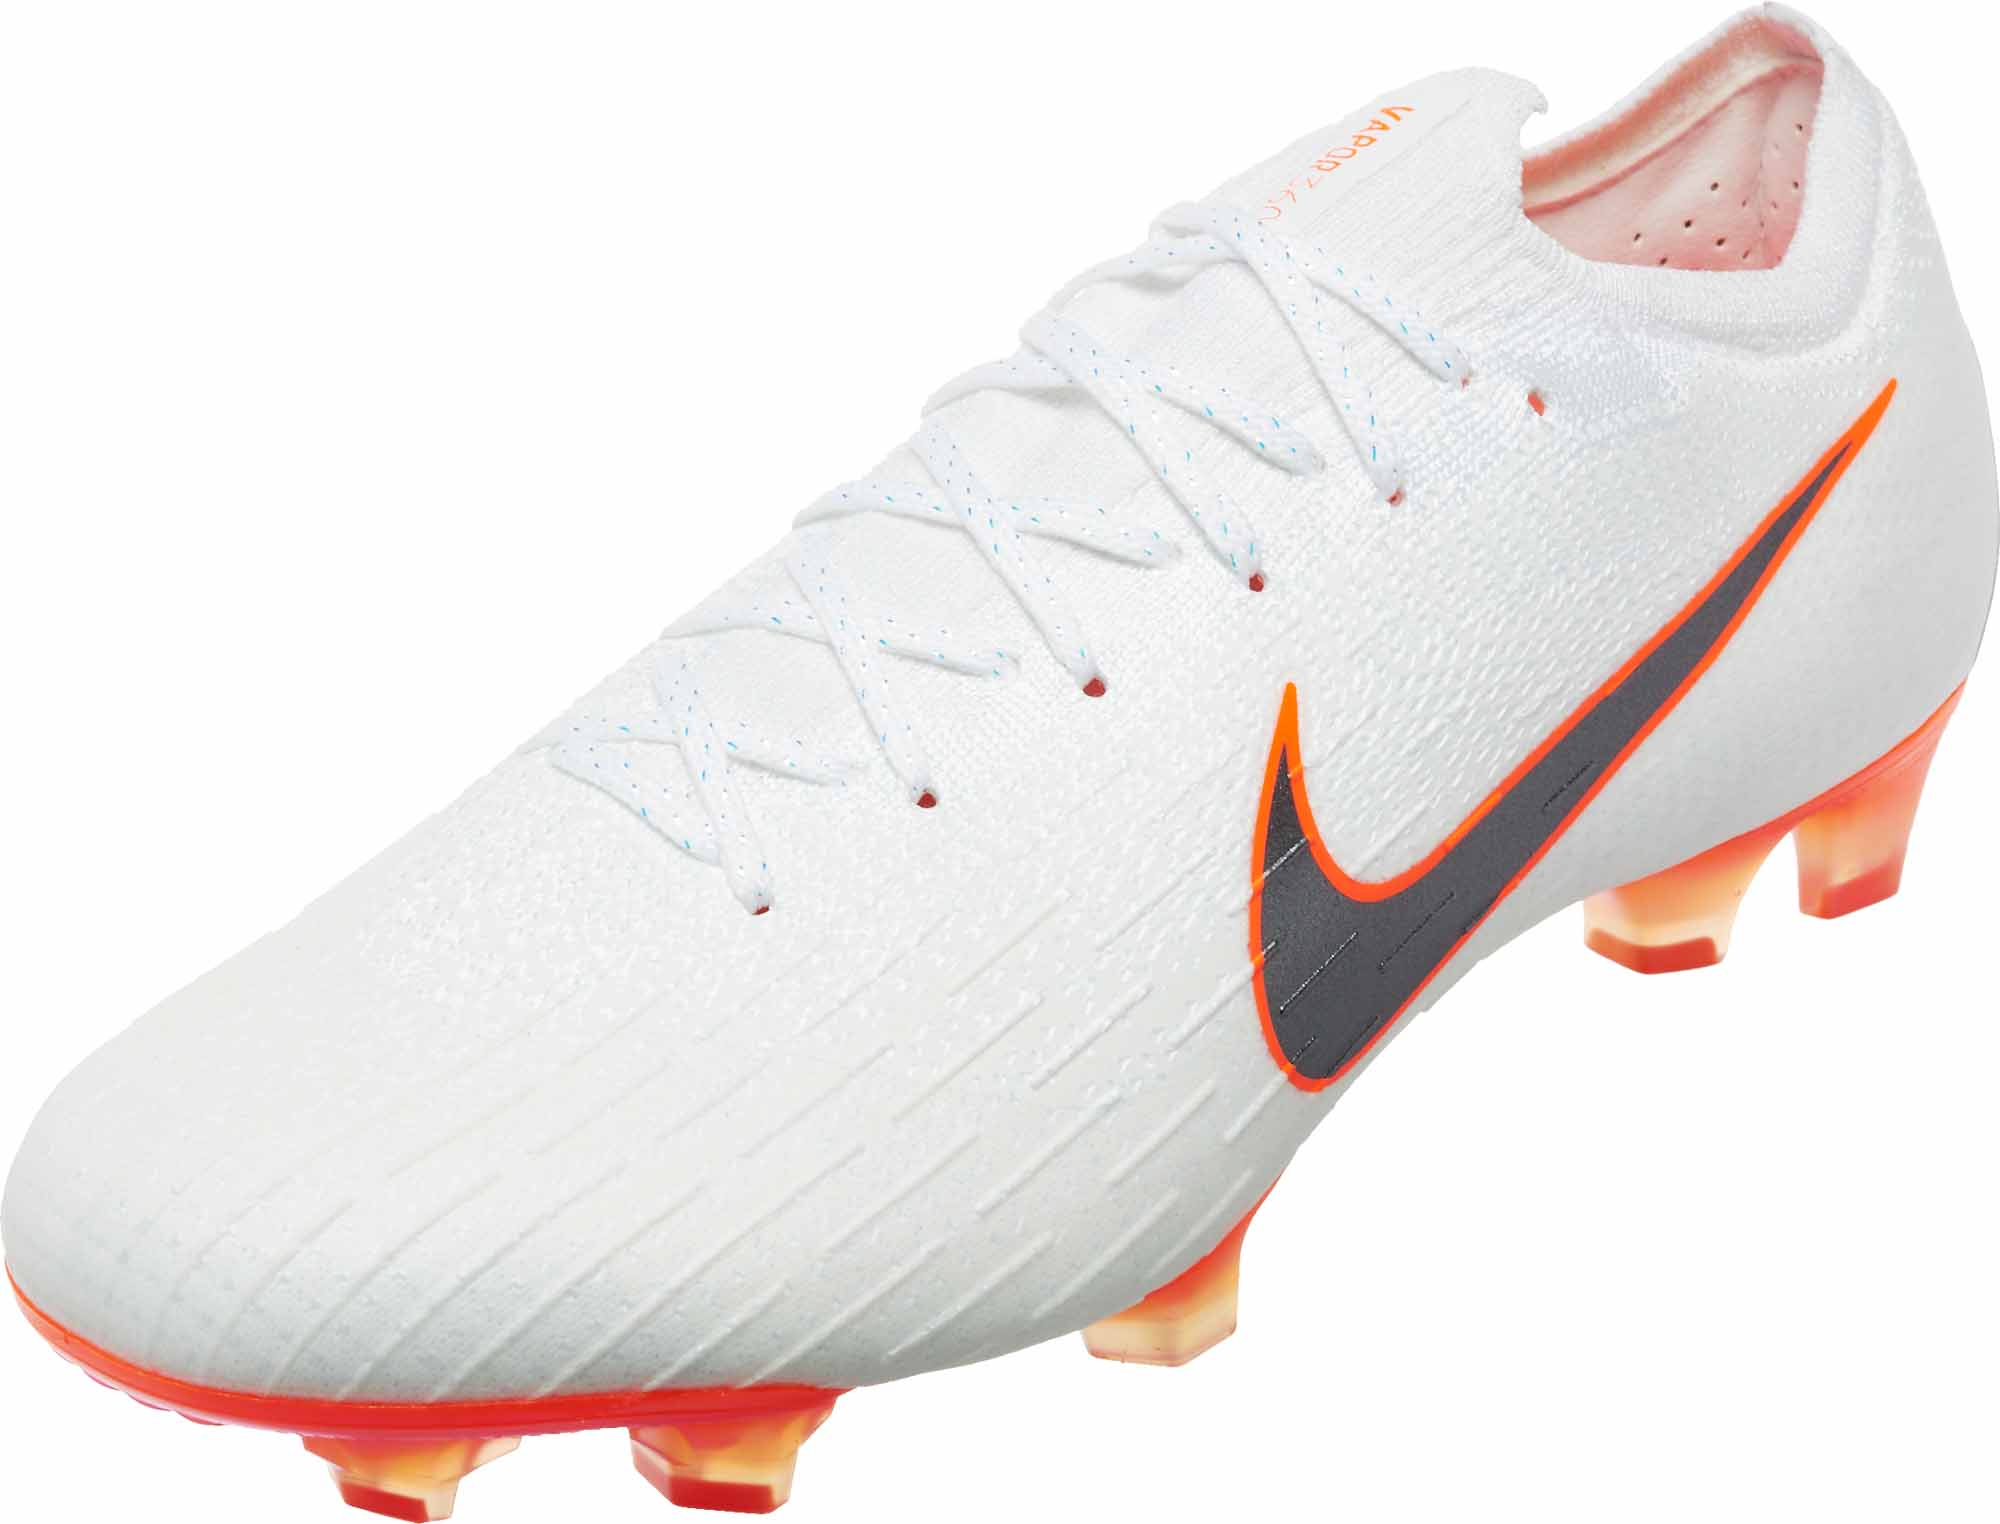 9a7158f10 Nike Mercurial Vapor 12 Elite FG - White Total Orange - SoccerPro